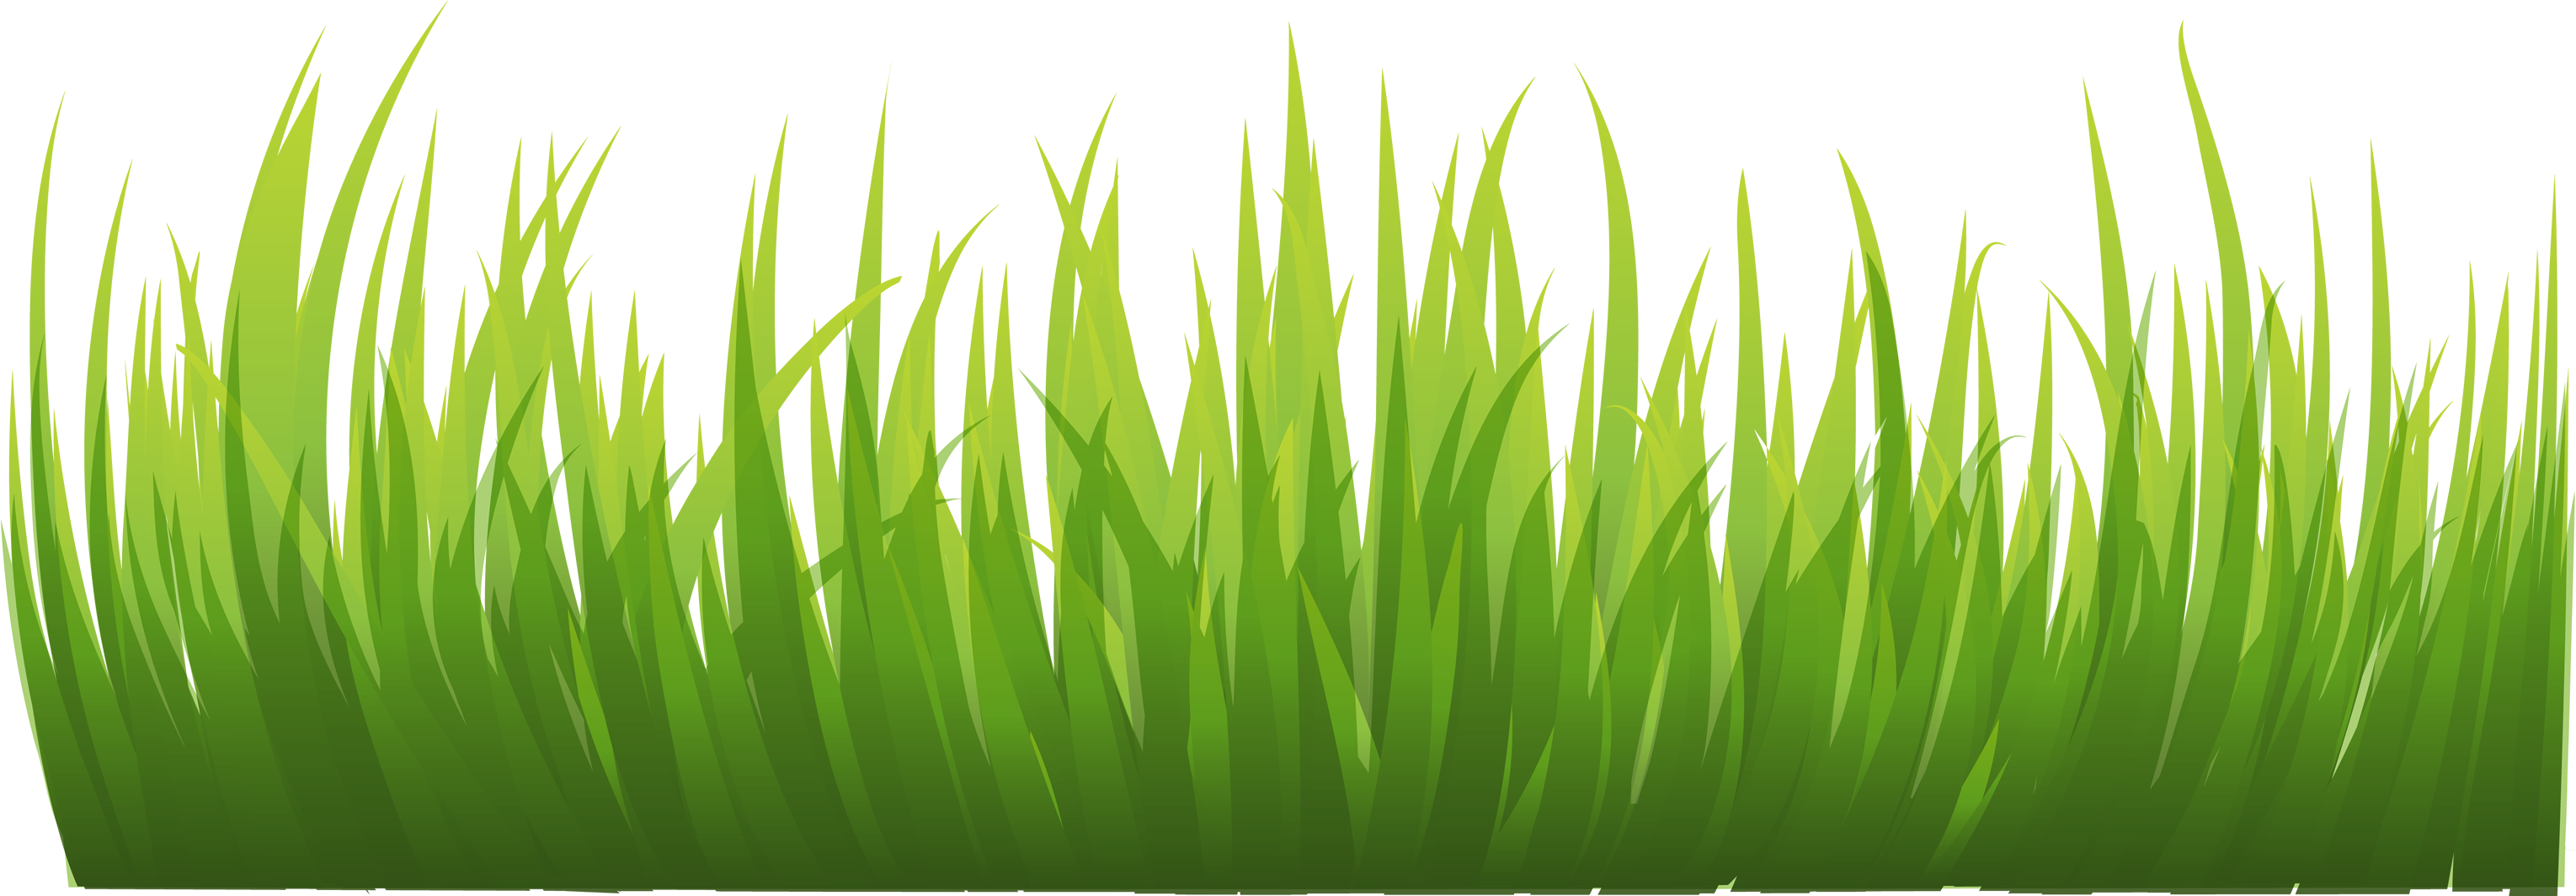 Grass Png Image, Green Grass Png Picture image #44856